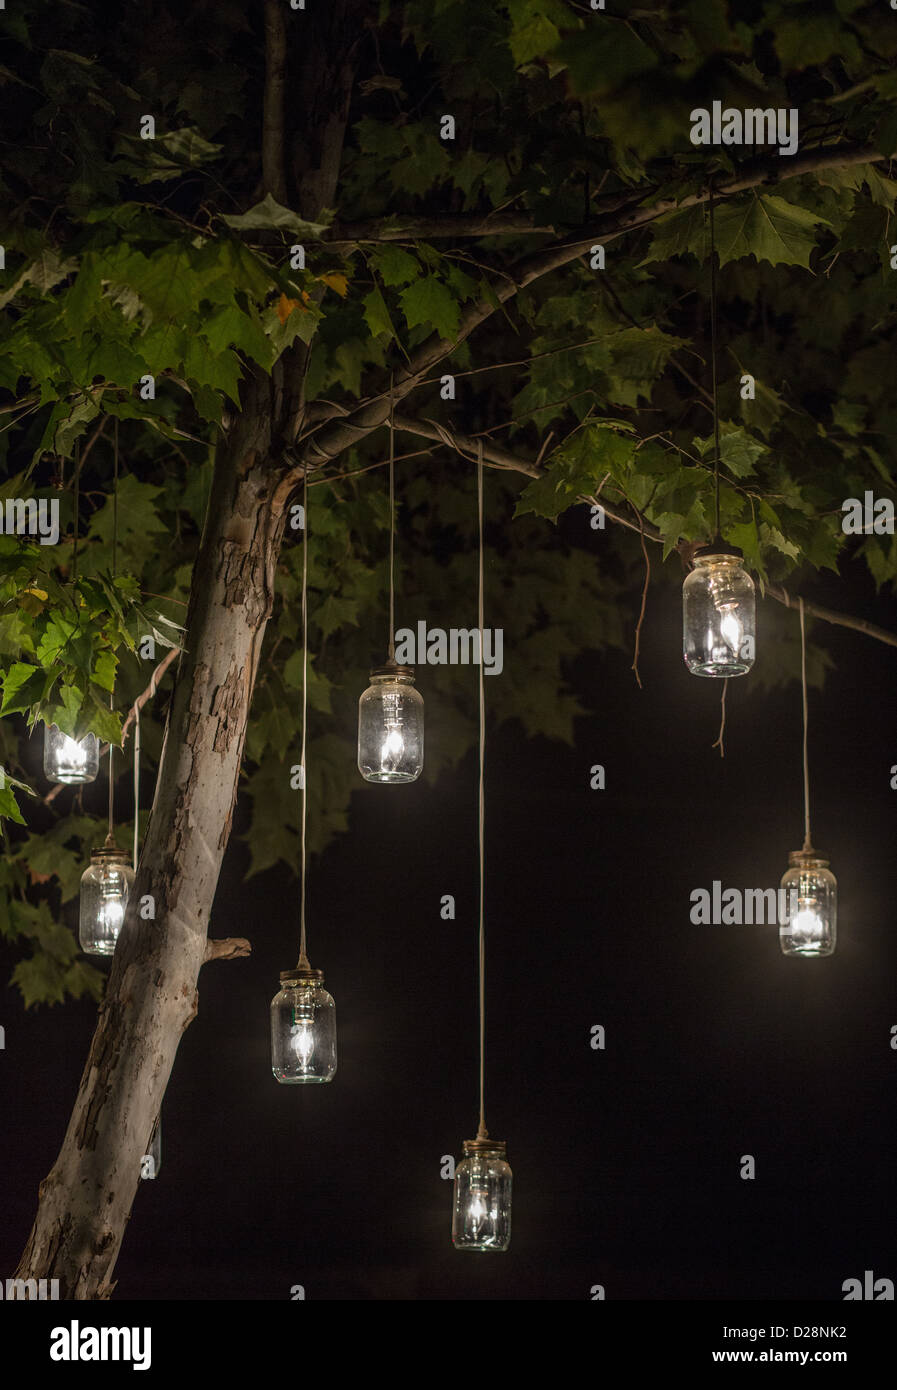 Glowing Mason Jar Lights Hanging From A Tree Stock Photo